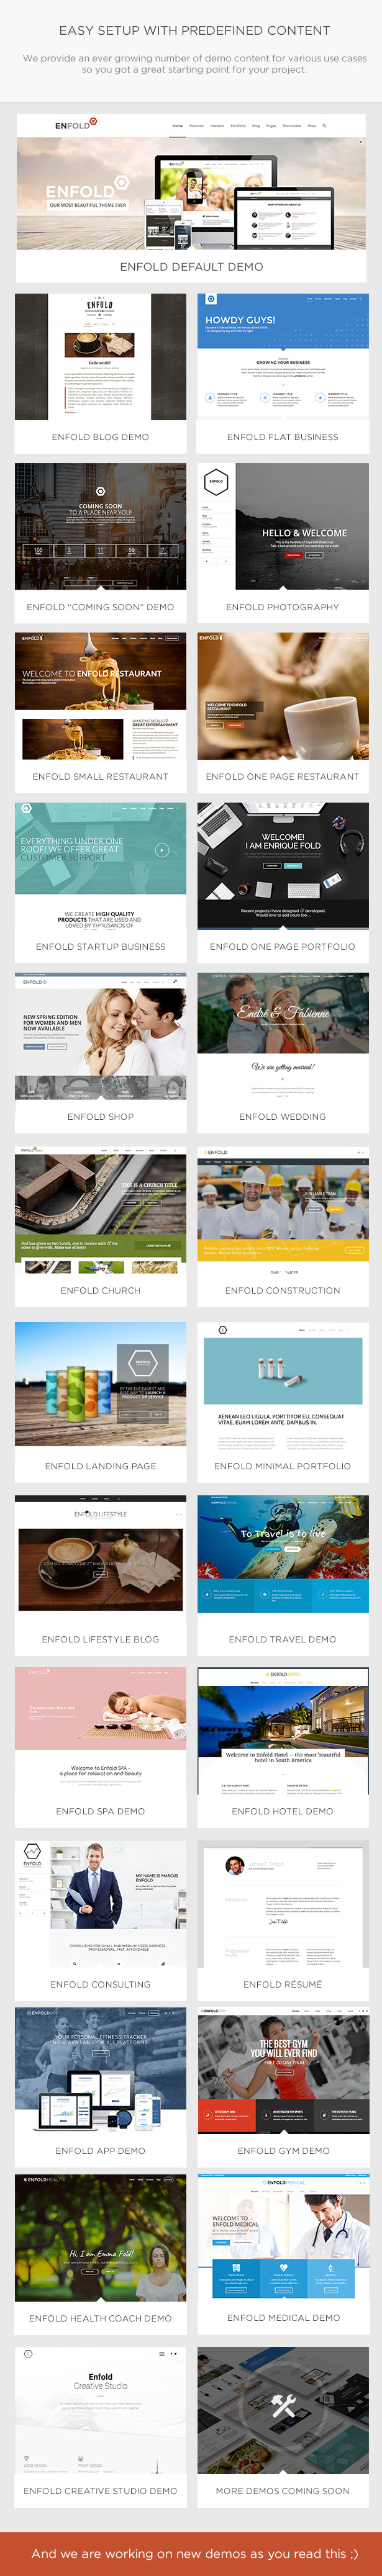 enfold4 - Enfold - Responsive Multi-Purpose Theme